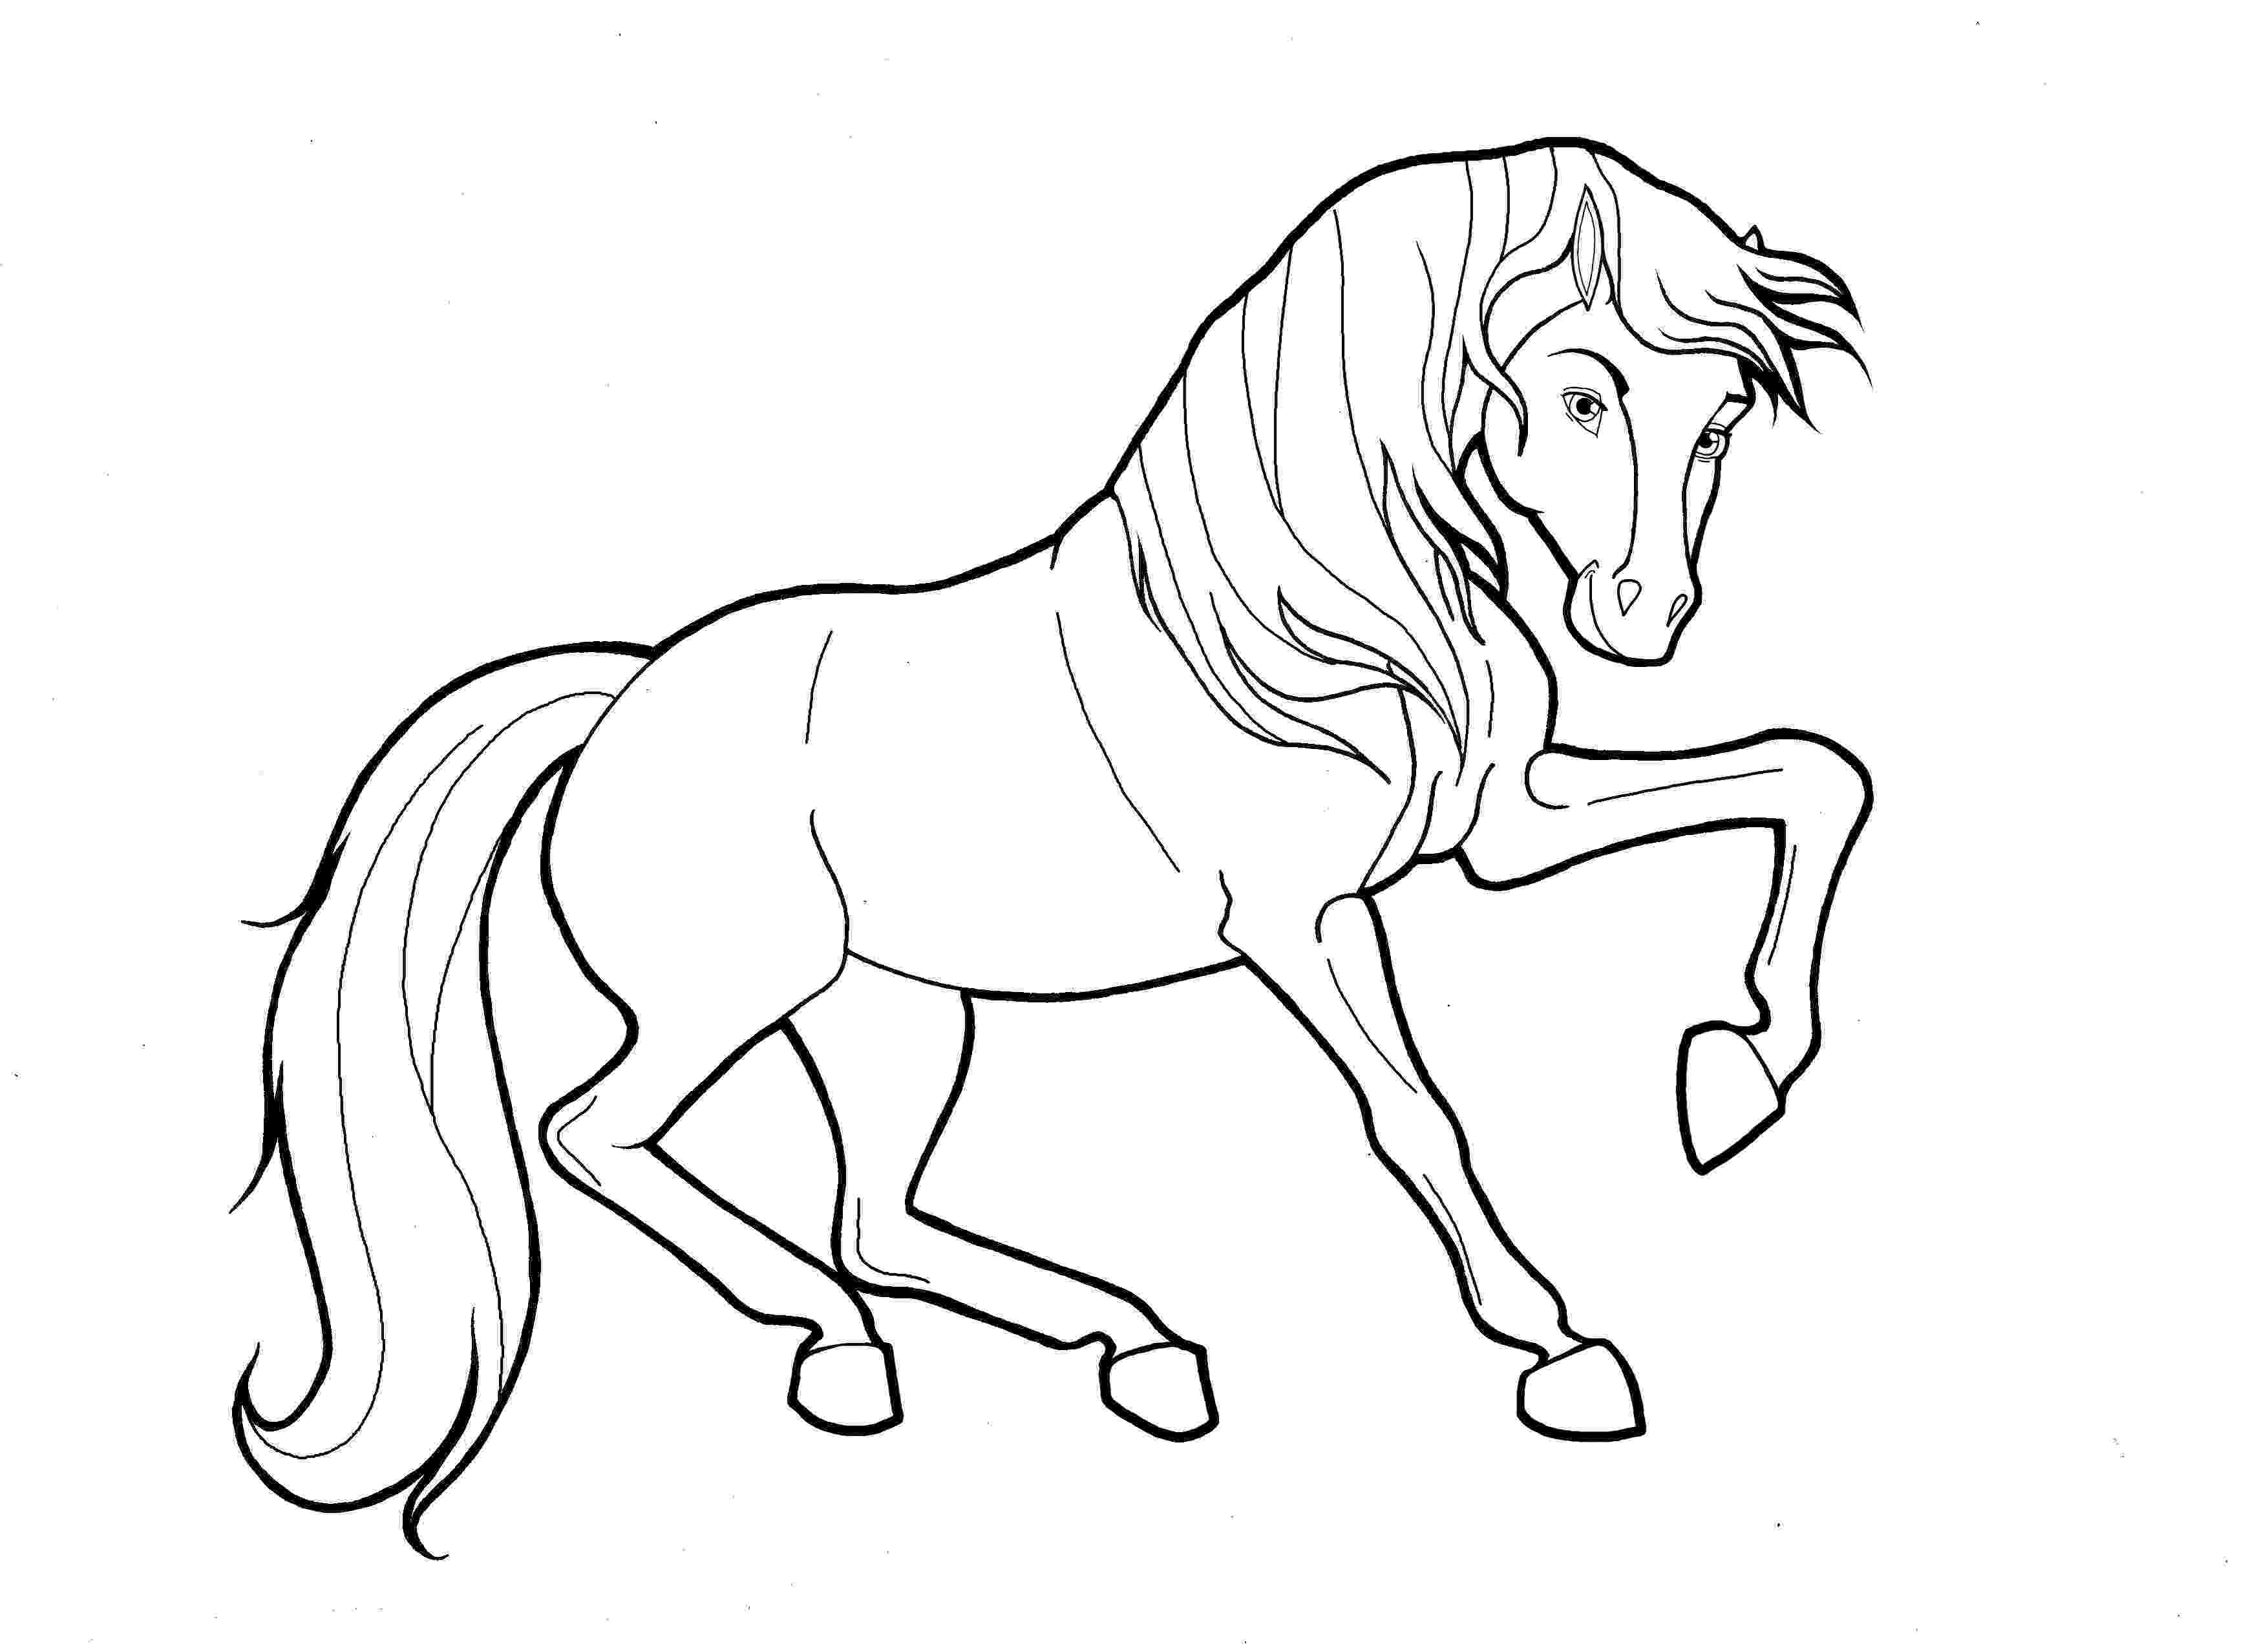 coloring page horse horse coloring pages for kids coloring pages for kids page coloring horse 1 1